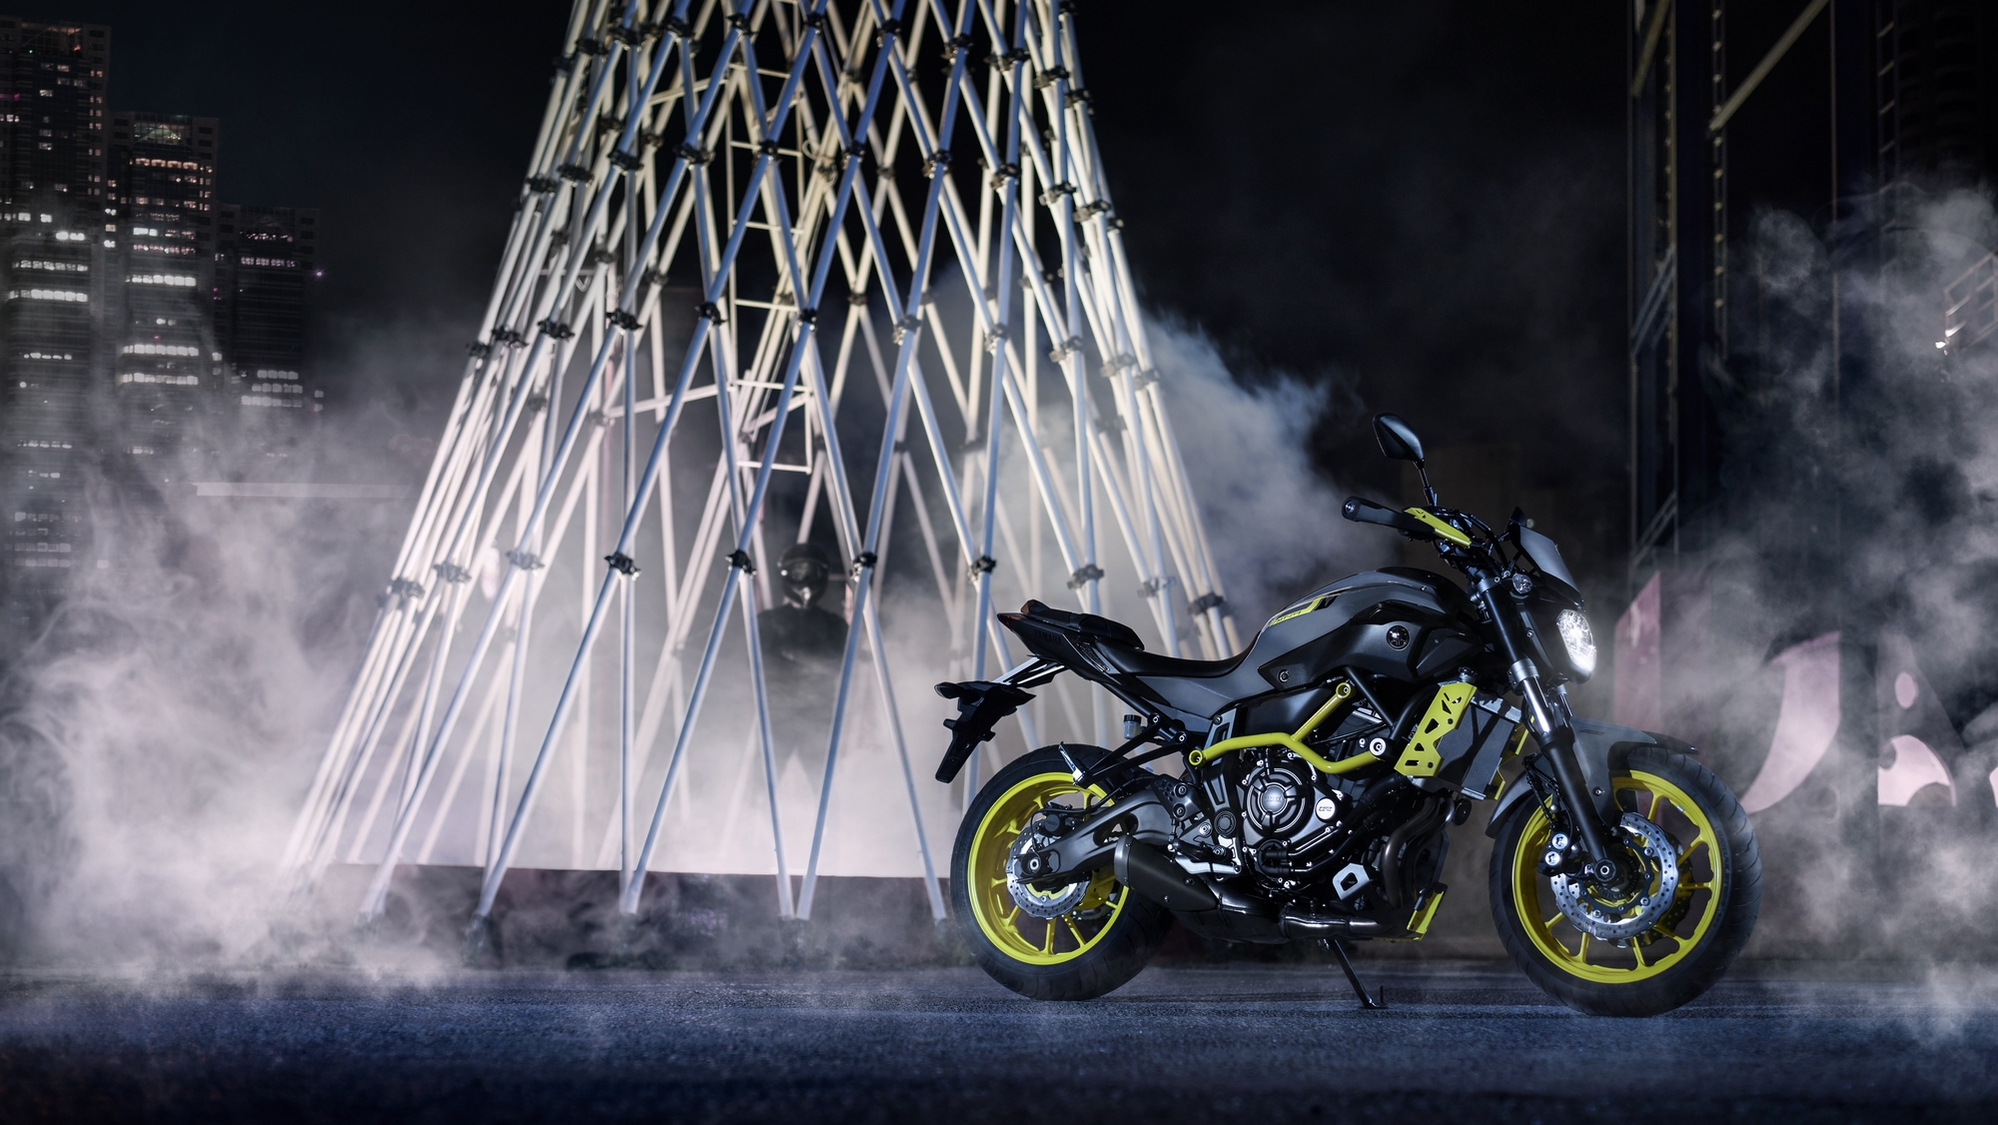 3d Yamaha Motorcycle Wallpaper Yamaha Adds Night Fluo To More Mt Bikes Shows The Mt 07